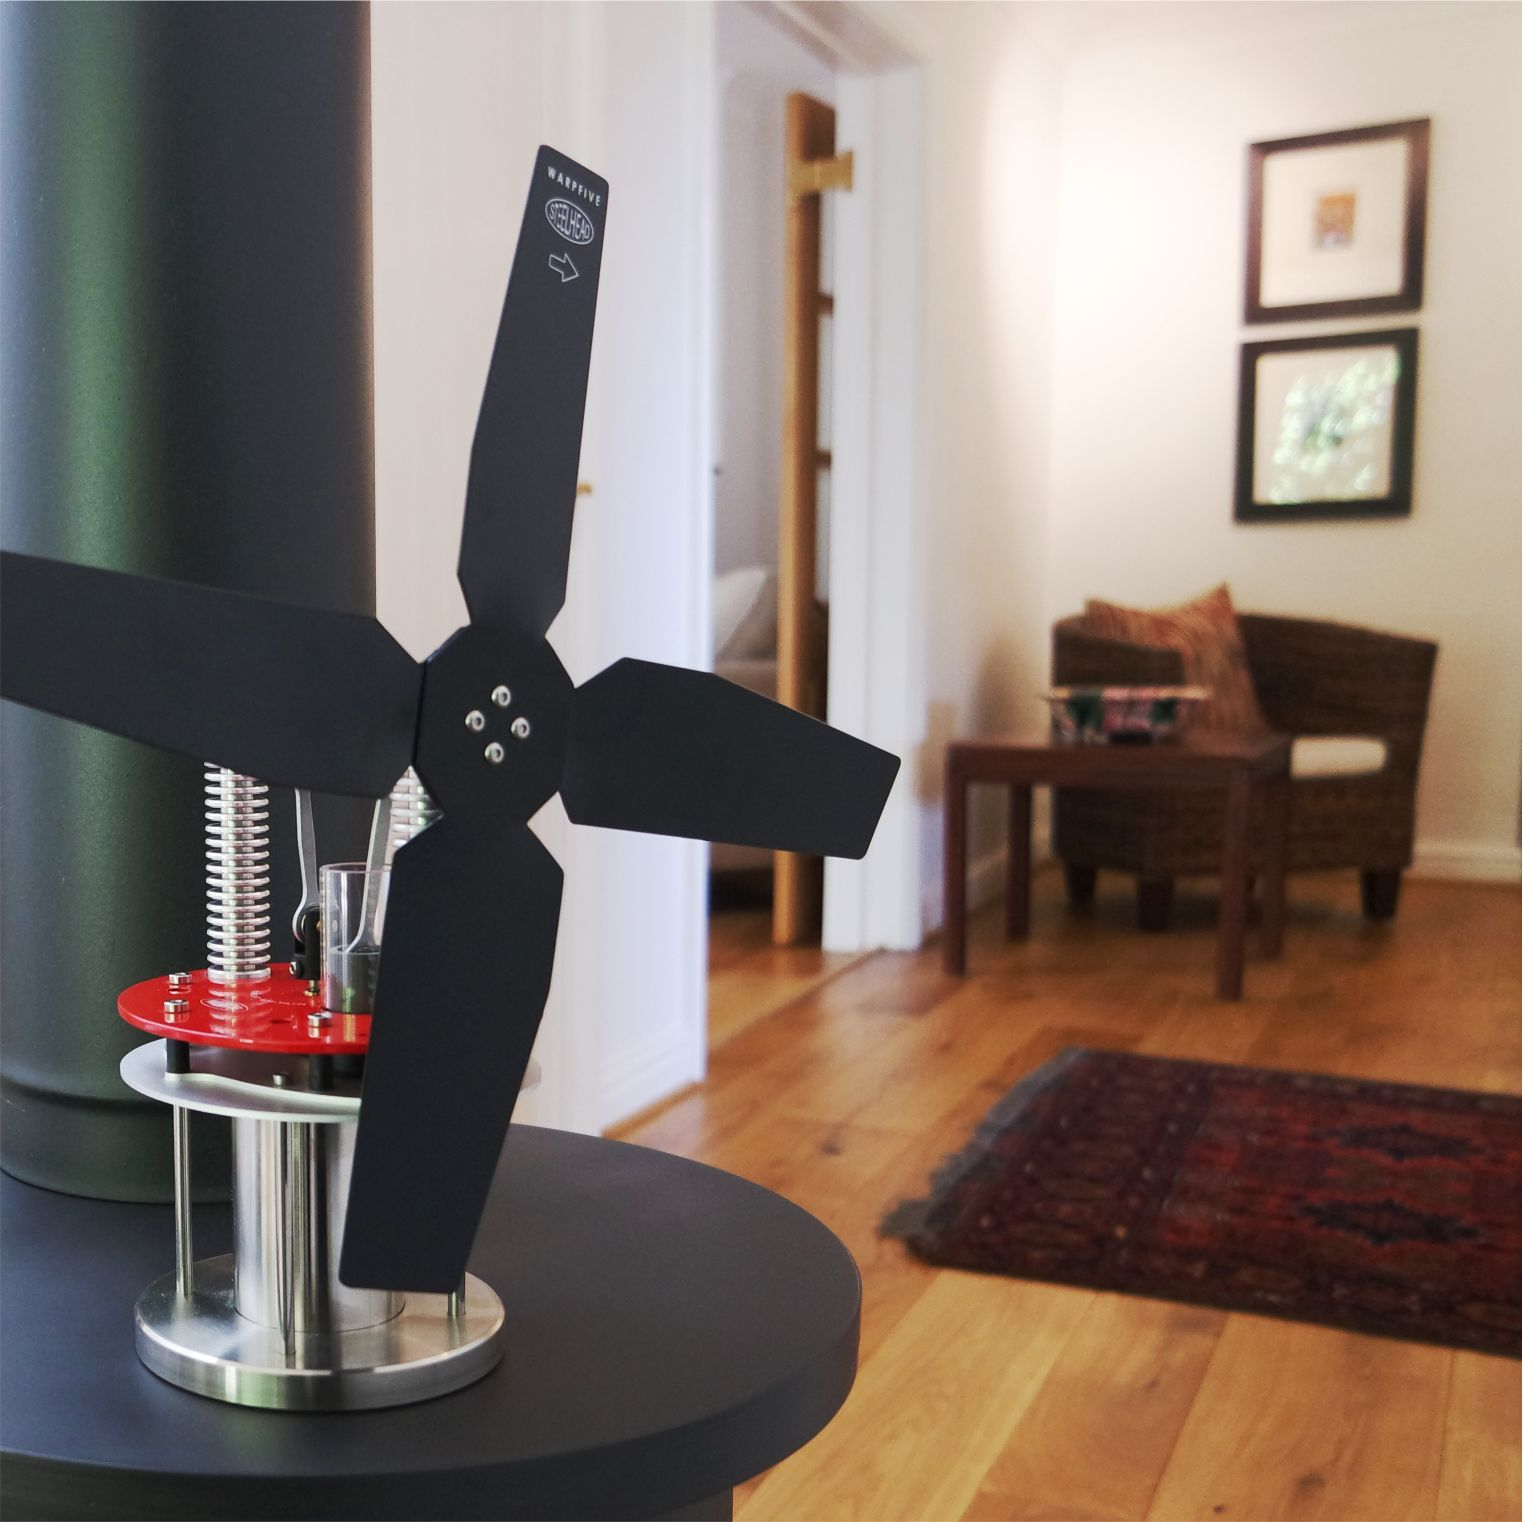 Classic Stirling engine stove fan for use across a broad range of temperatures